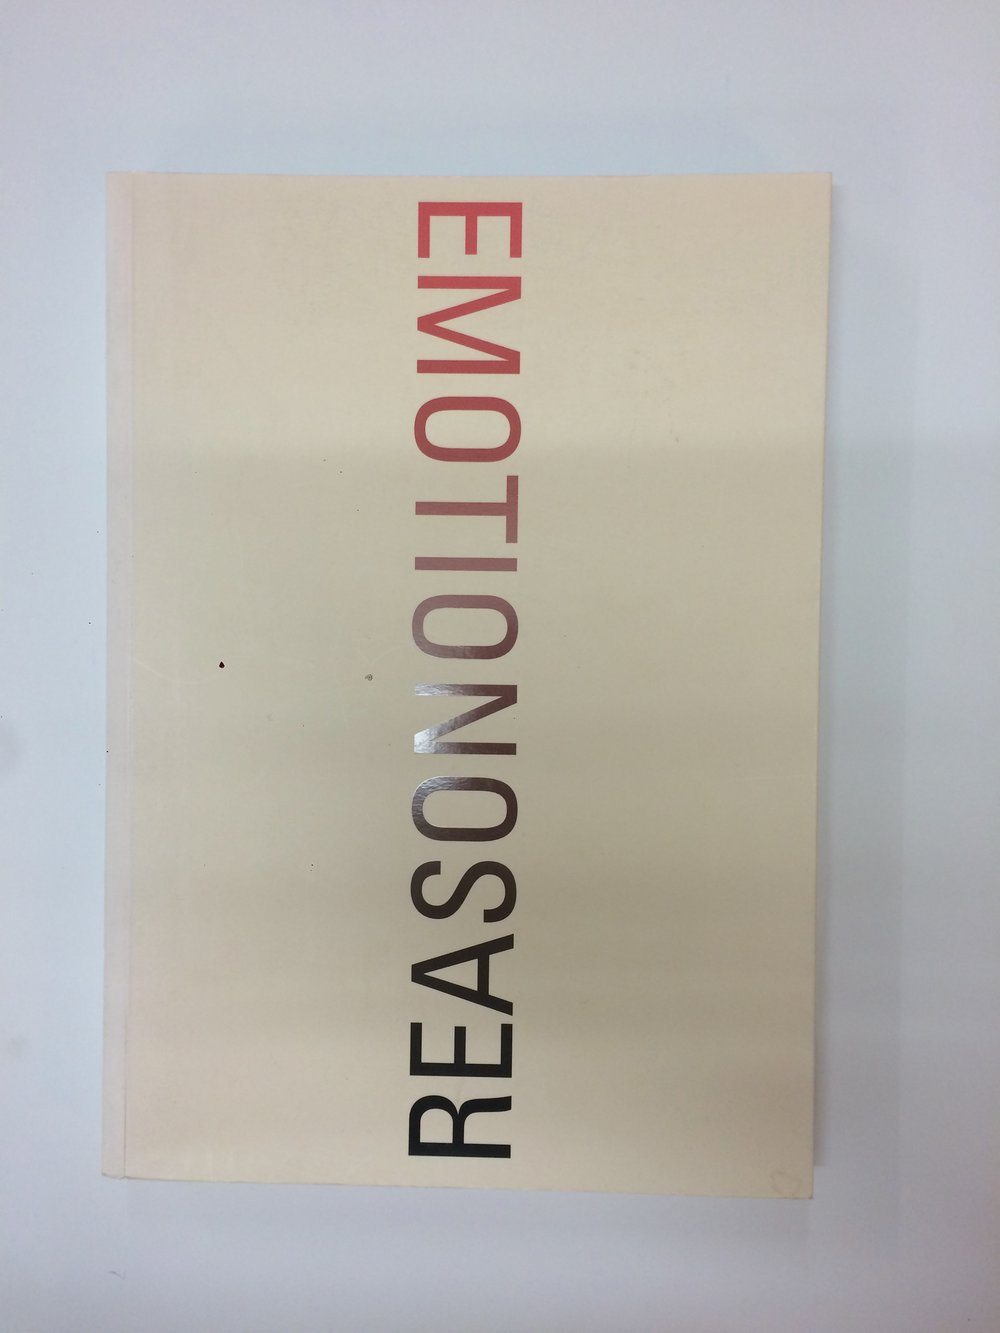 'Biennale of Sydney 2004 on Reason and Emotion': Inscribed